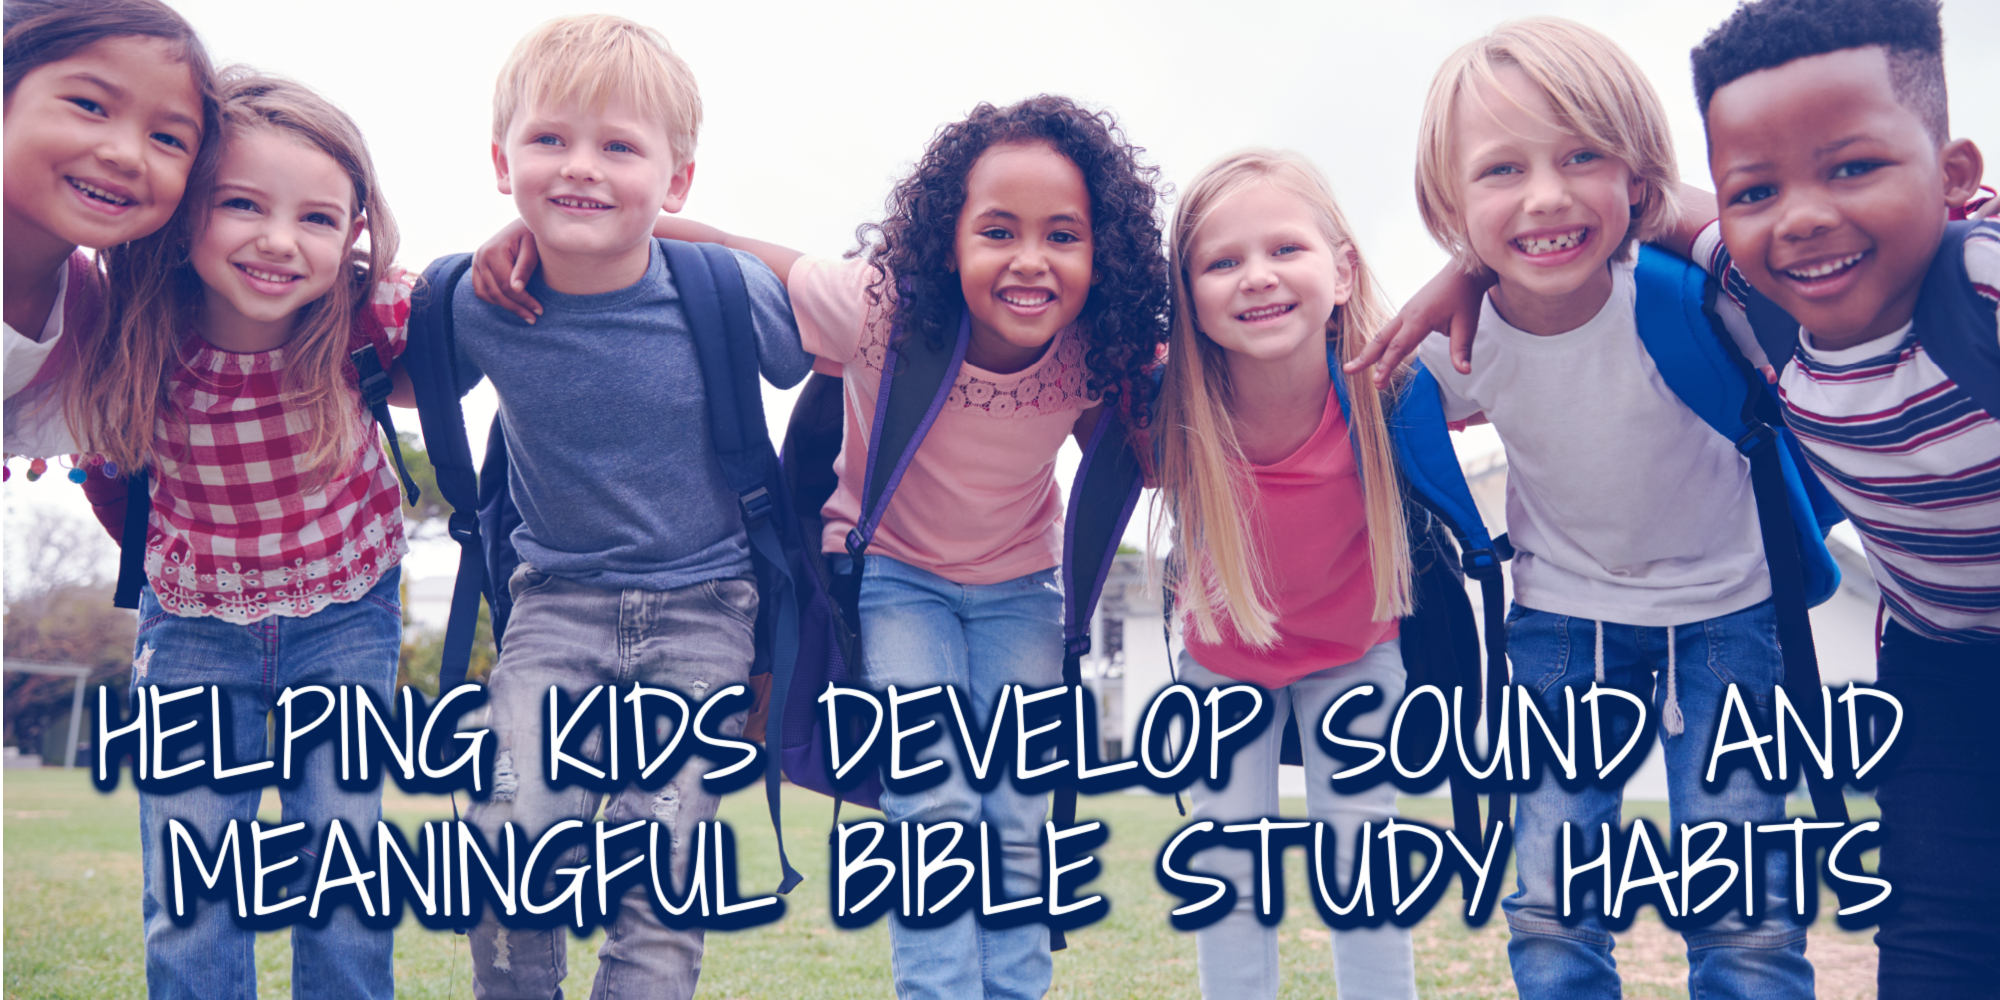 Scripture Dig for Kids is designed to help children ages 5-11 developing meaningful and solid Bible study habits